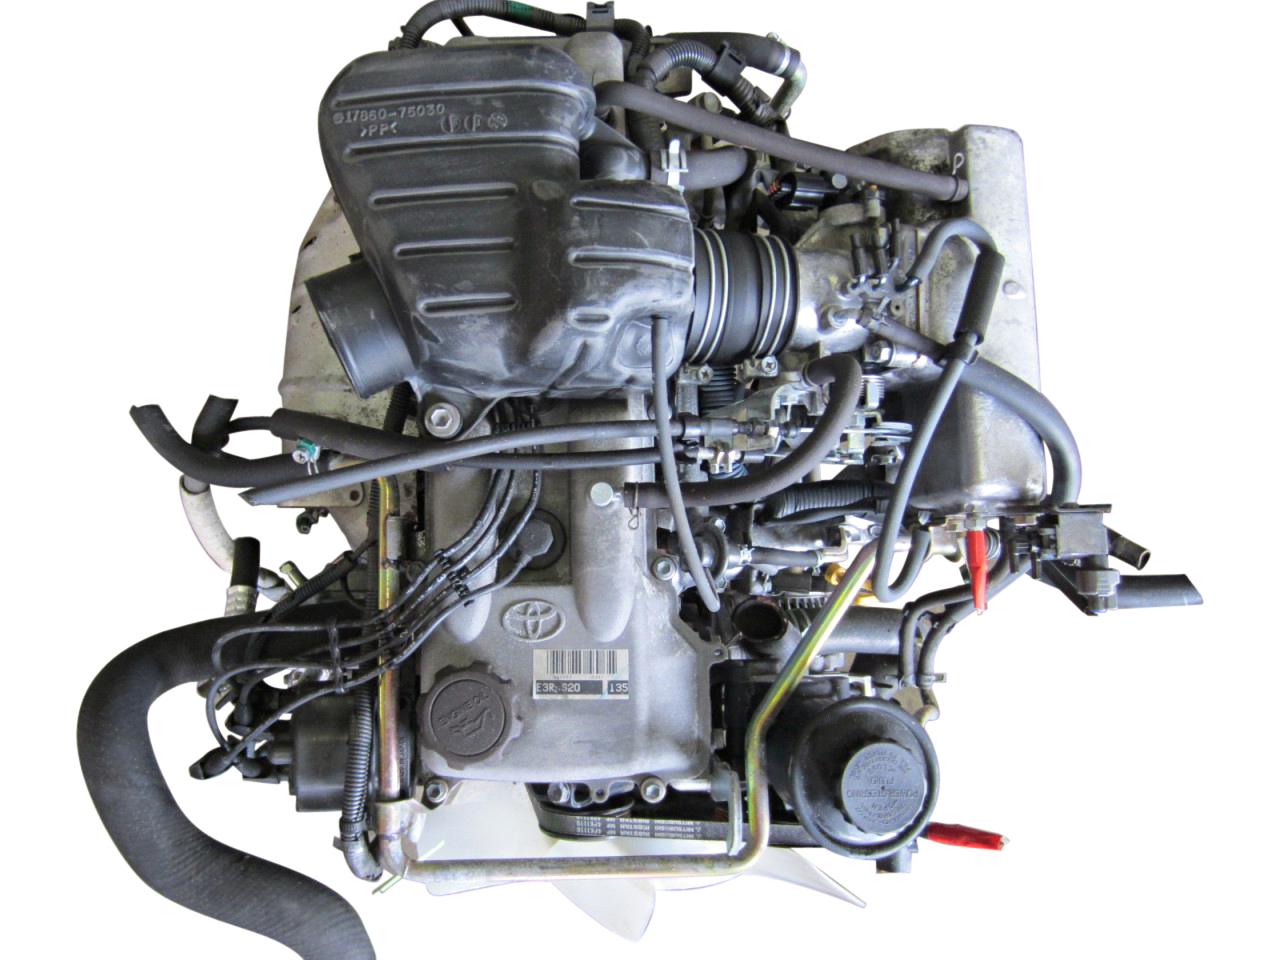 Toyota 4Runner Used Japanese Engine and Re-manufactured 3VZ, 5VZ, 3RZ